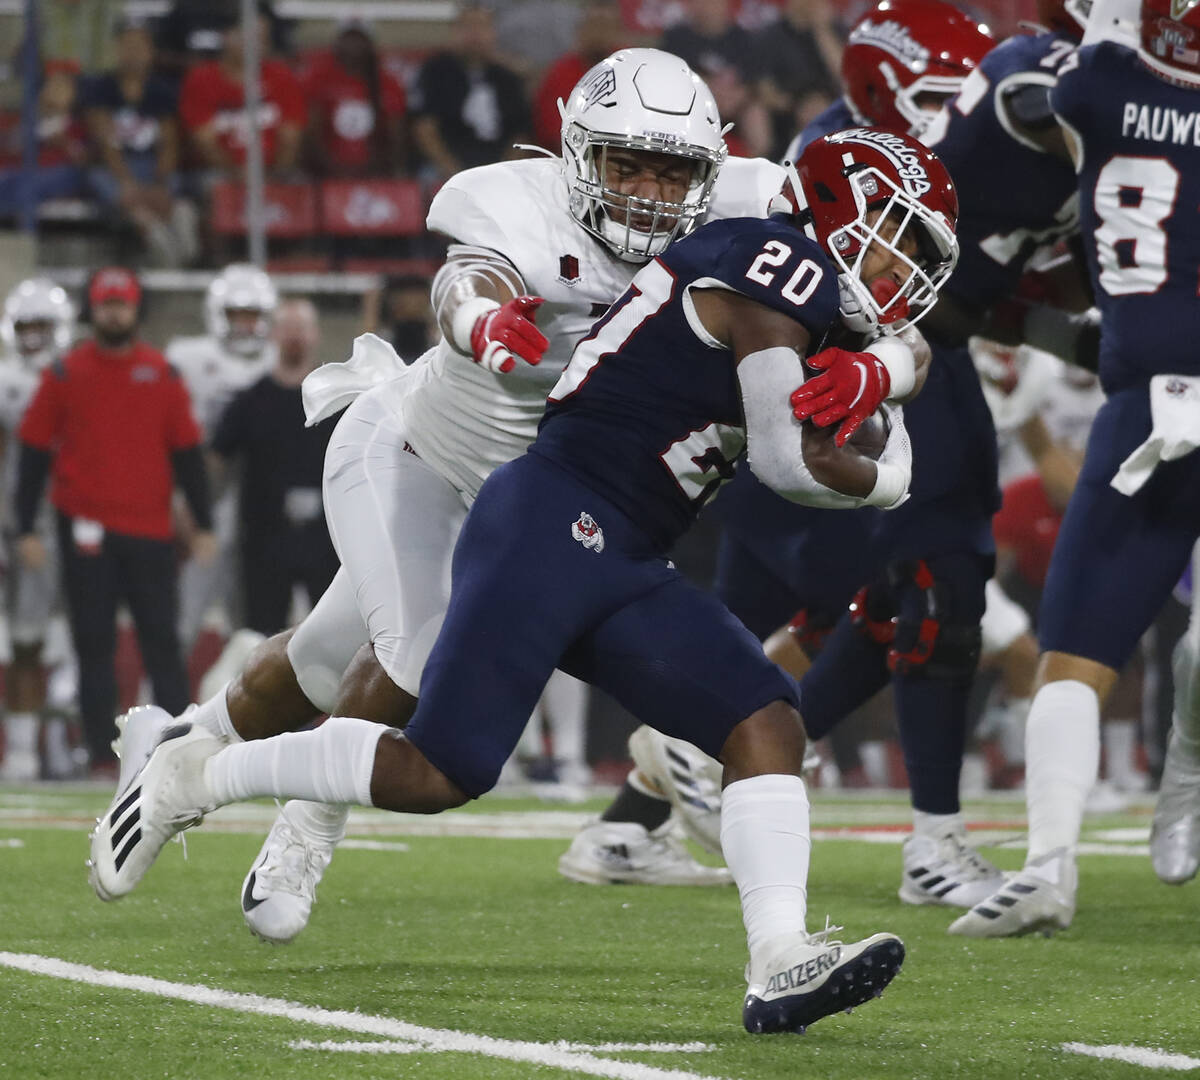 UNLV linebacker Kylan Wilborn wraps up Fresno State running back Ronnie Rivers during the first ...